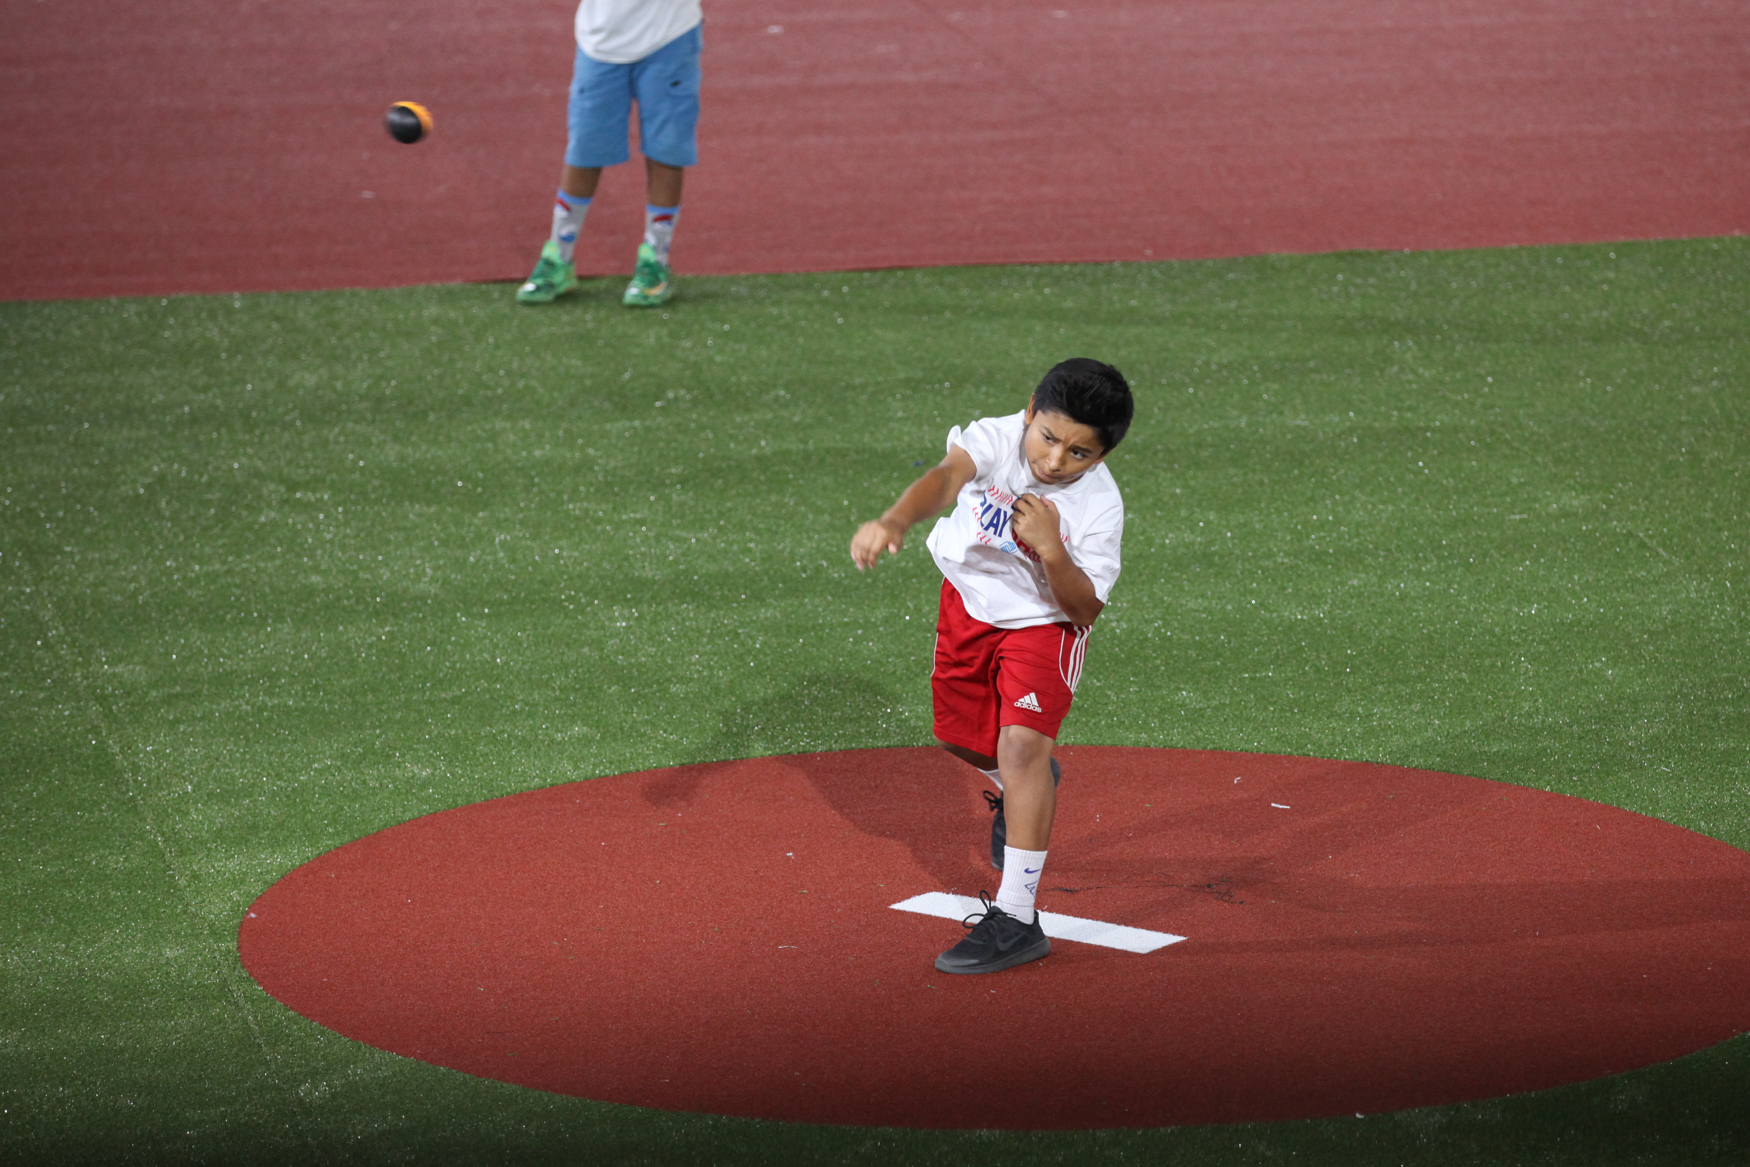 One of the main attractions is the Play Ball Park, which gives kids a taste of what it's like to stand on the pitch. (Amanda Andrade-Rhoades/DC Refined)